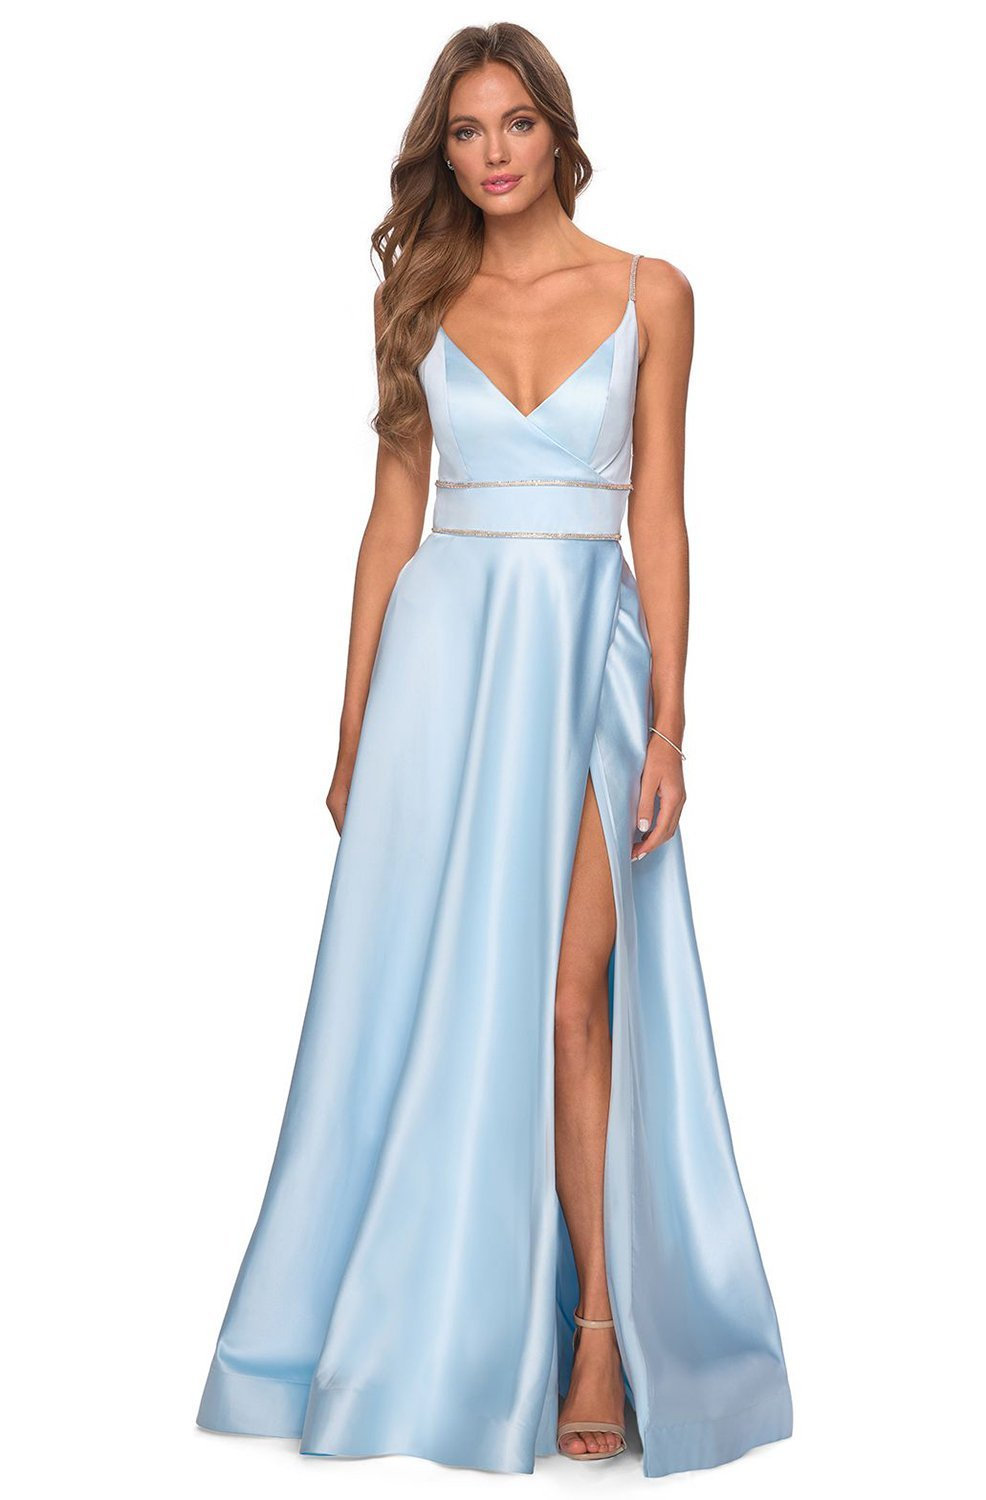 La Femme - Strappy Backless High Slit A-Line Dress 28385SC In Blue